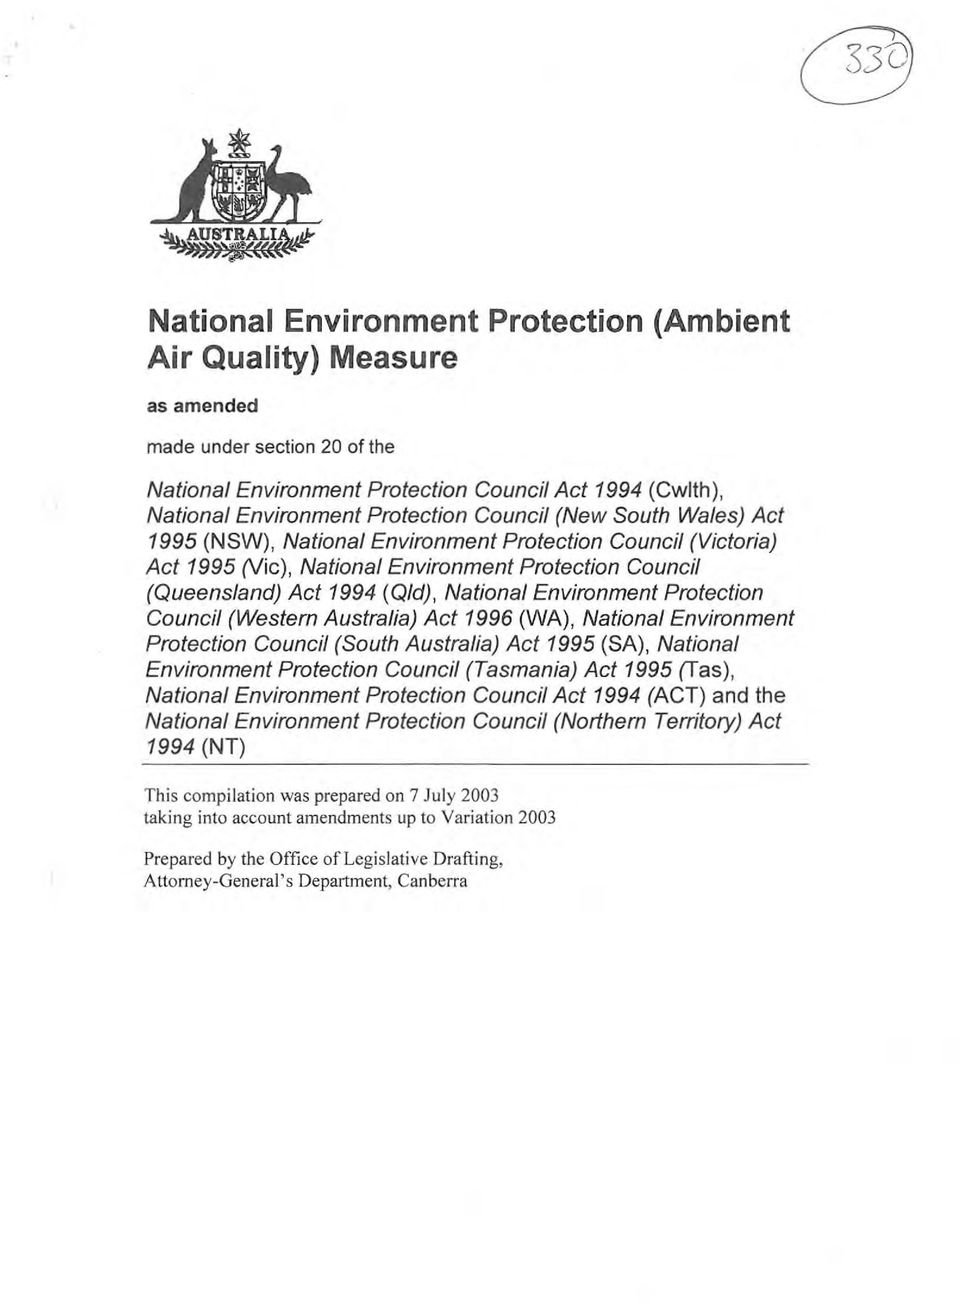 Council (Western Australia) Act 1996 (WA), National Environment Protection Council (South Australia) Act 1995 (SA), National Environment Protection Council (Tasmania) Act 1995 (Tas), National